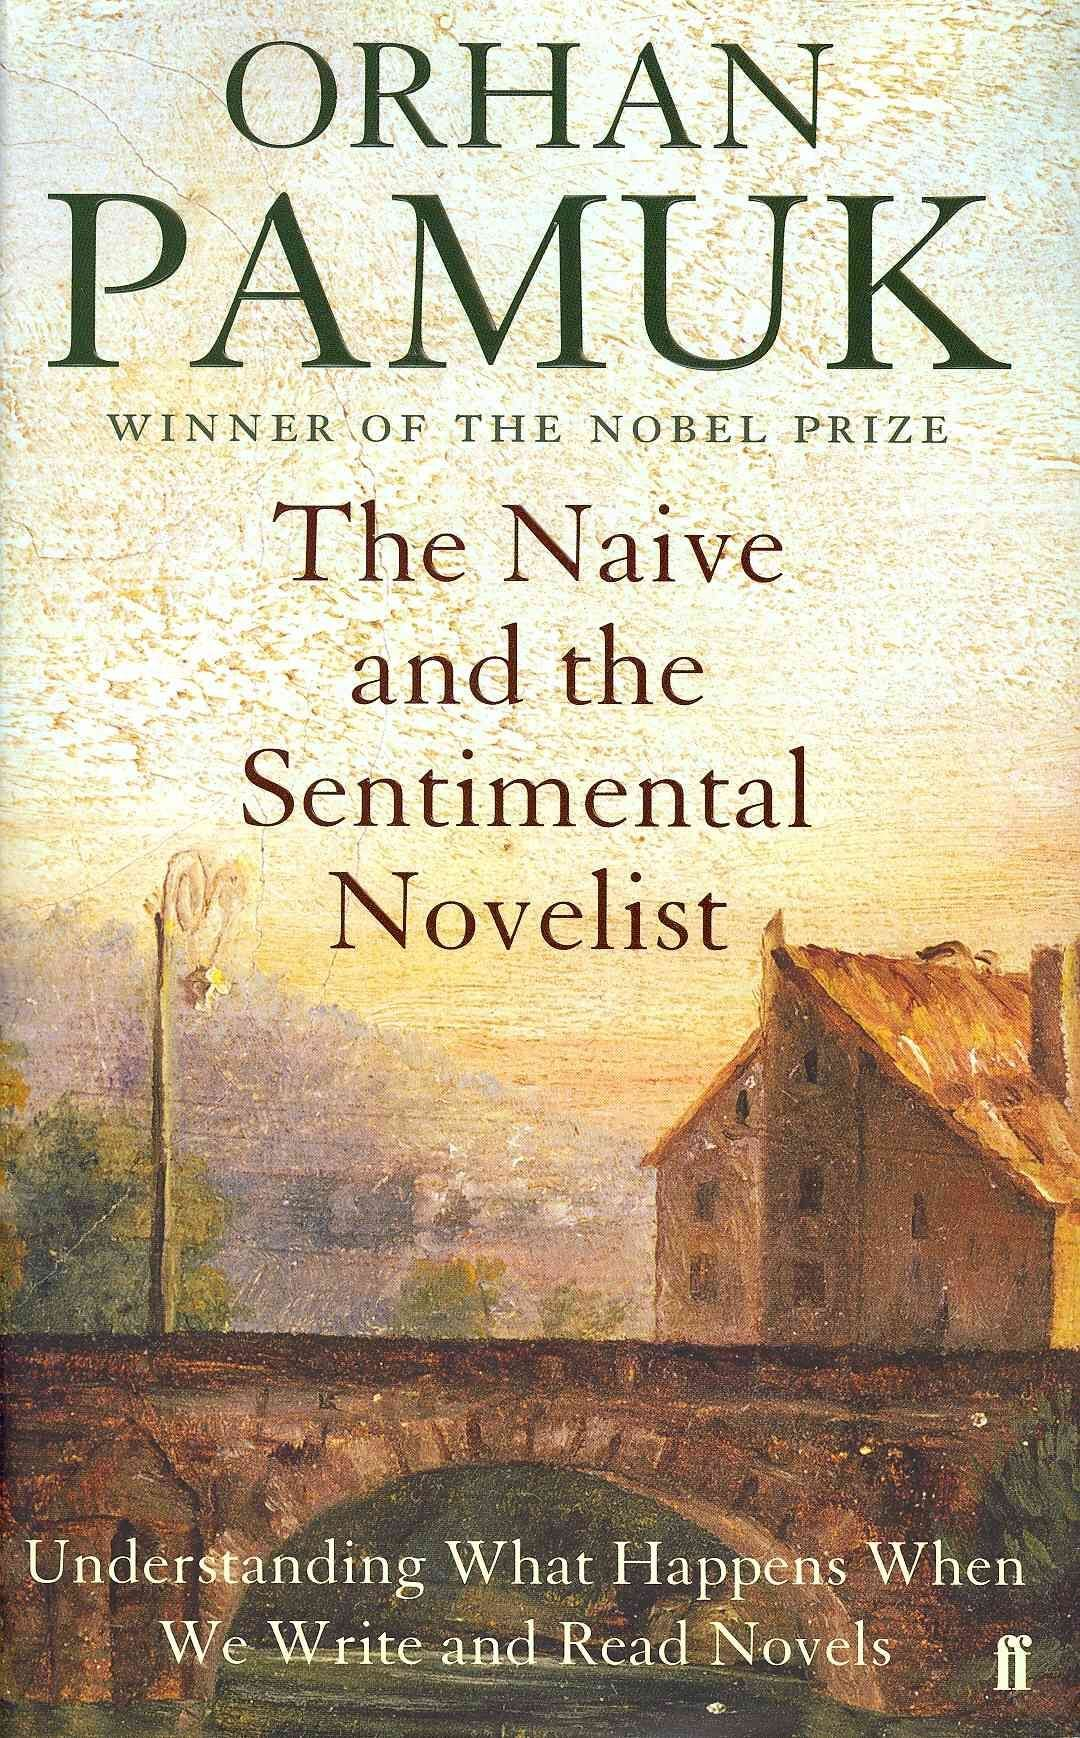 The Naive and the Sentimental Novelist - Orhan Pamuk